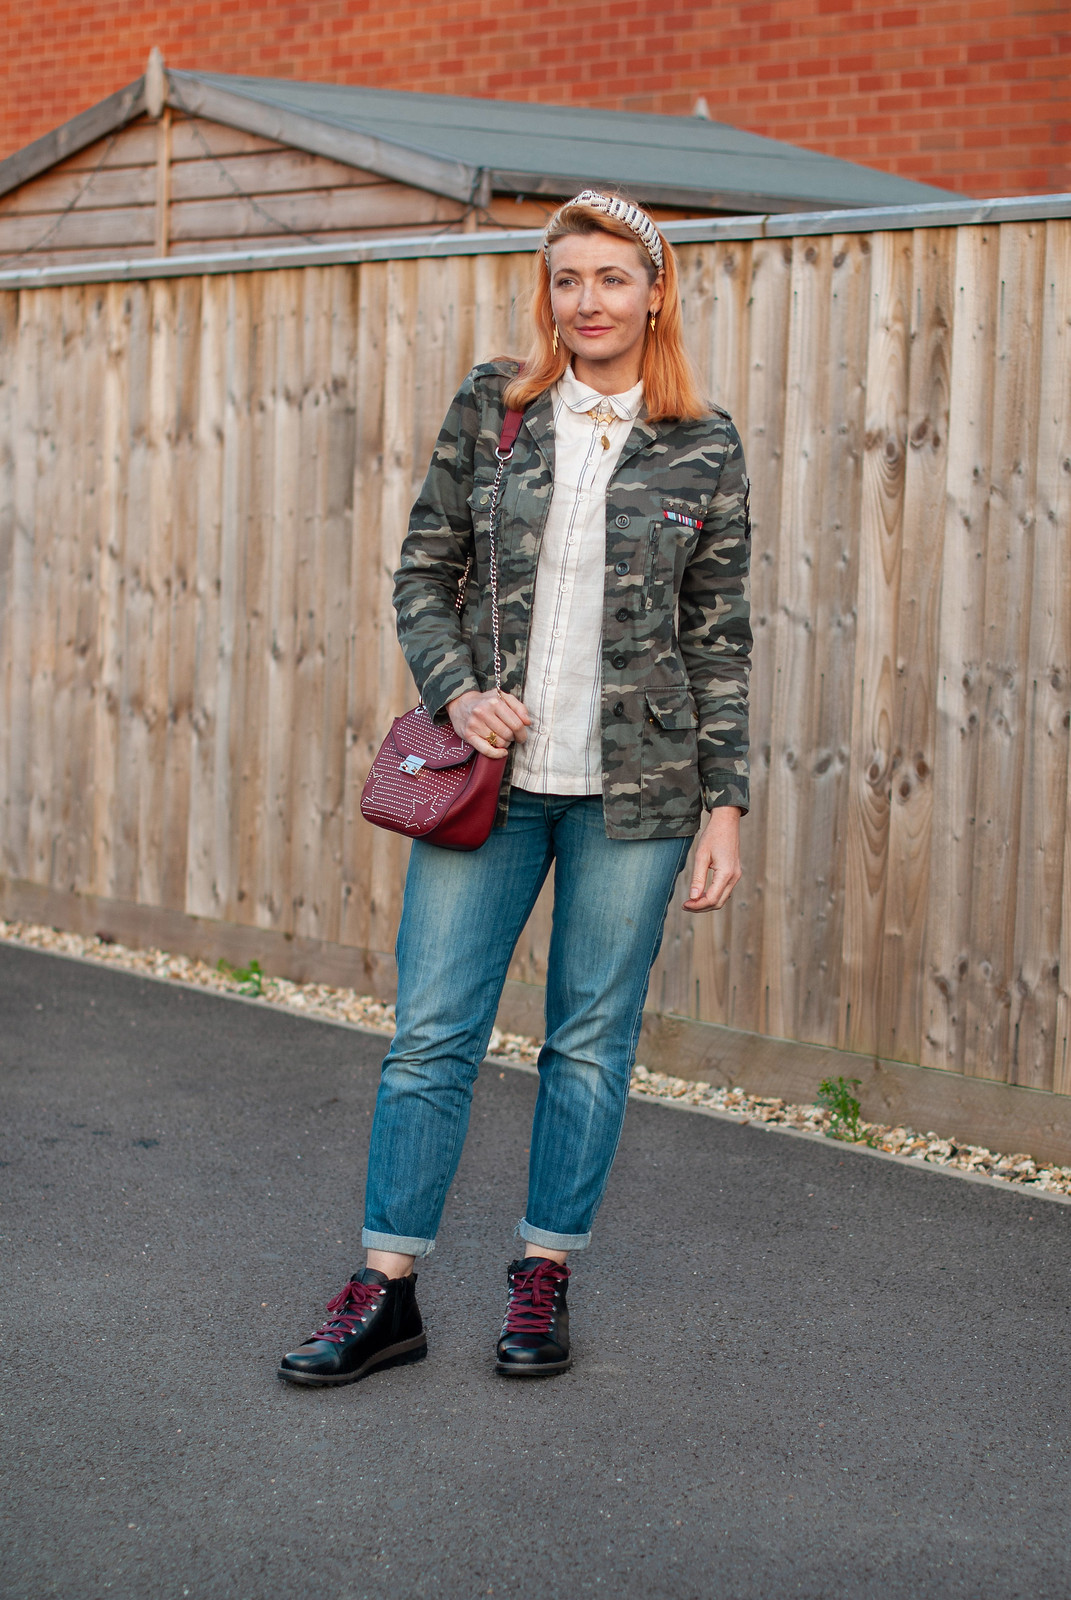 How to Do Masculine Chic With Denim, Camo and Military-Style Boots (Josef Seibel Lina 09 Boots, AW19) by Not Dressed As Lamb, over 40 fashion and style blogger